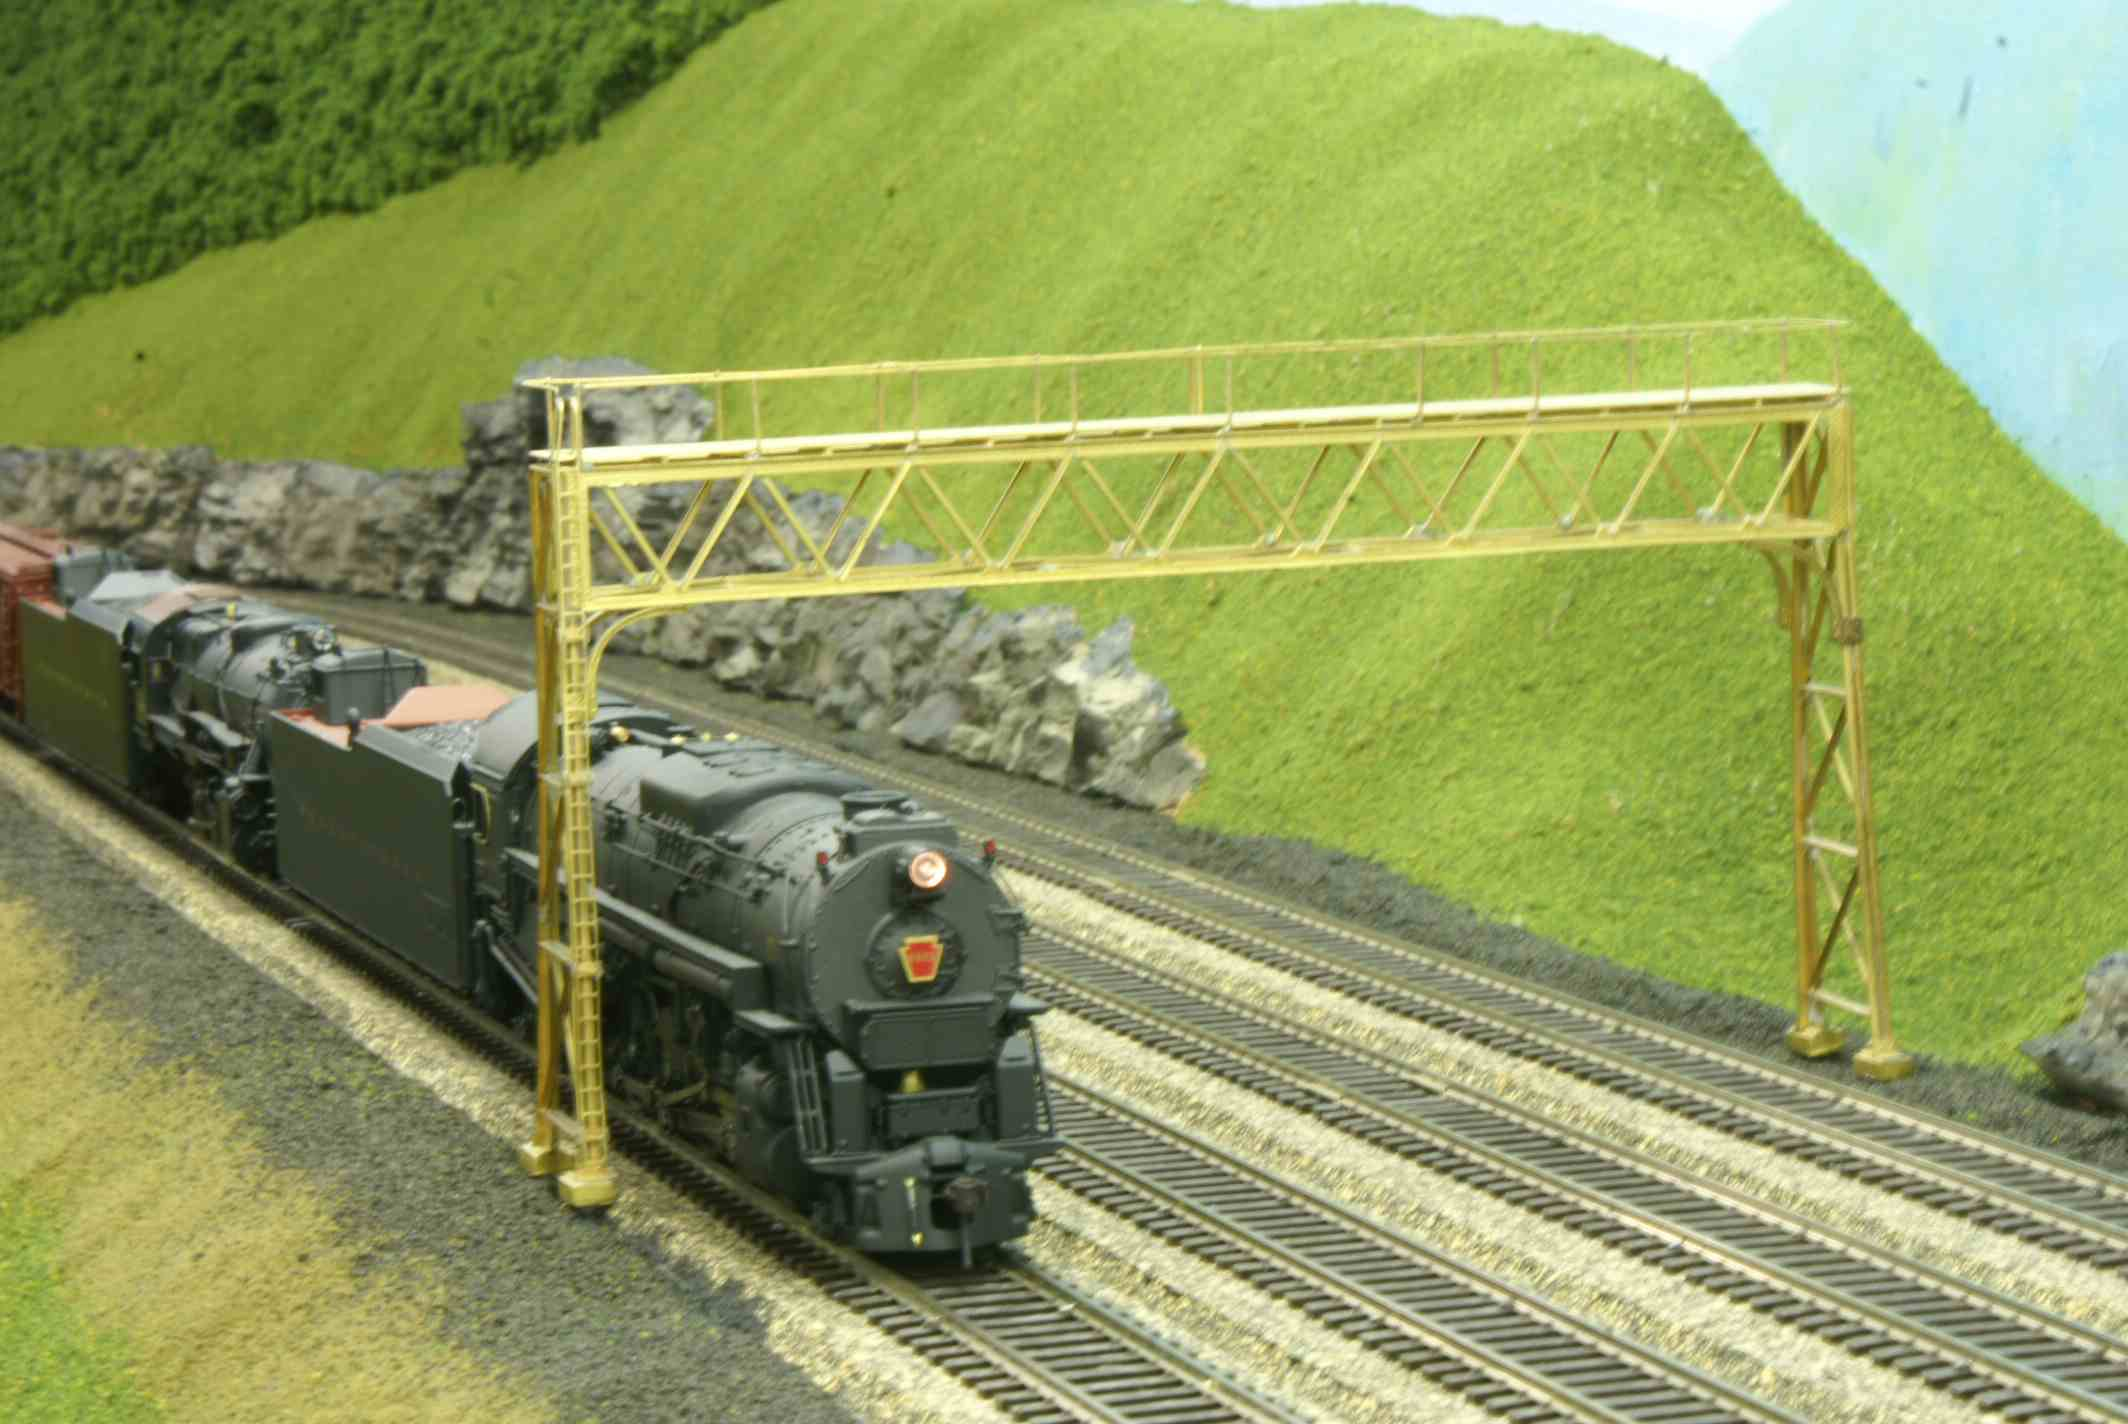 Model train going under an arch